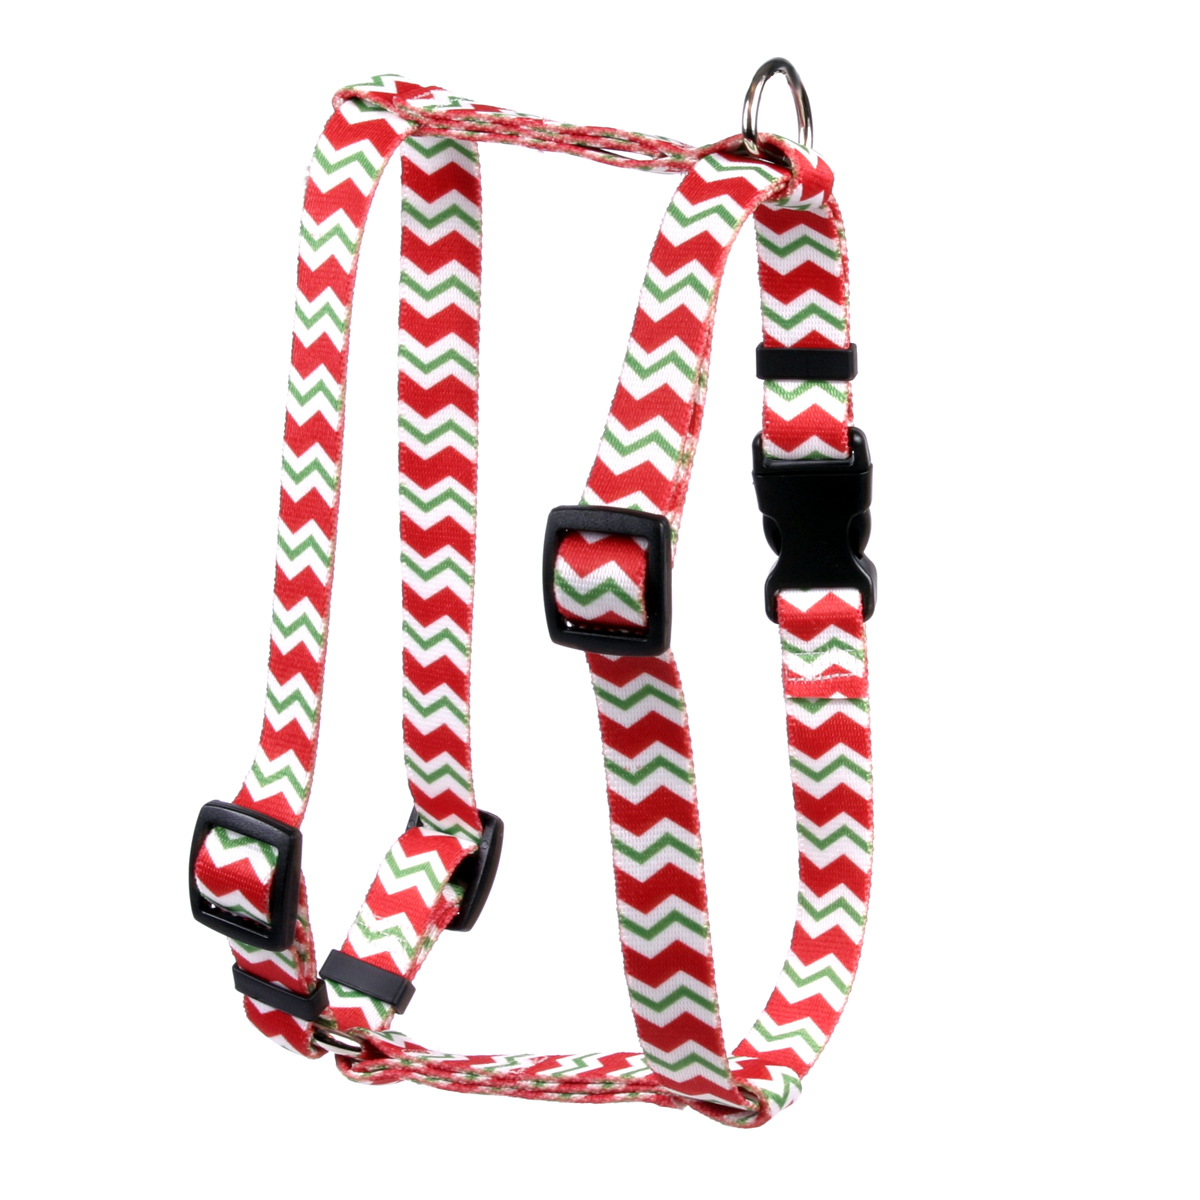 Peppermint Stick Chevron Stripes Roman H Harness